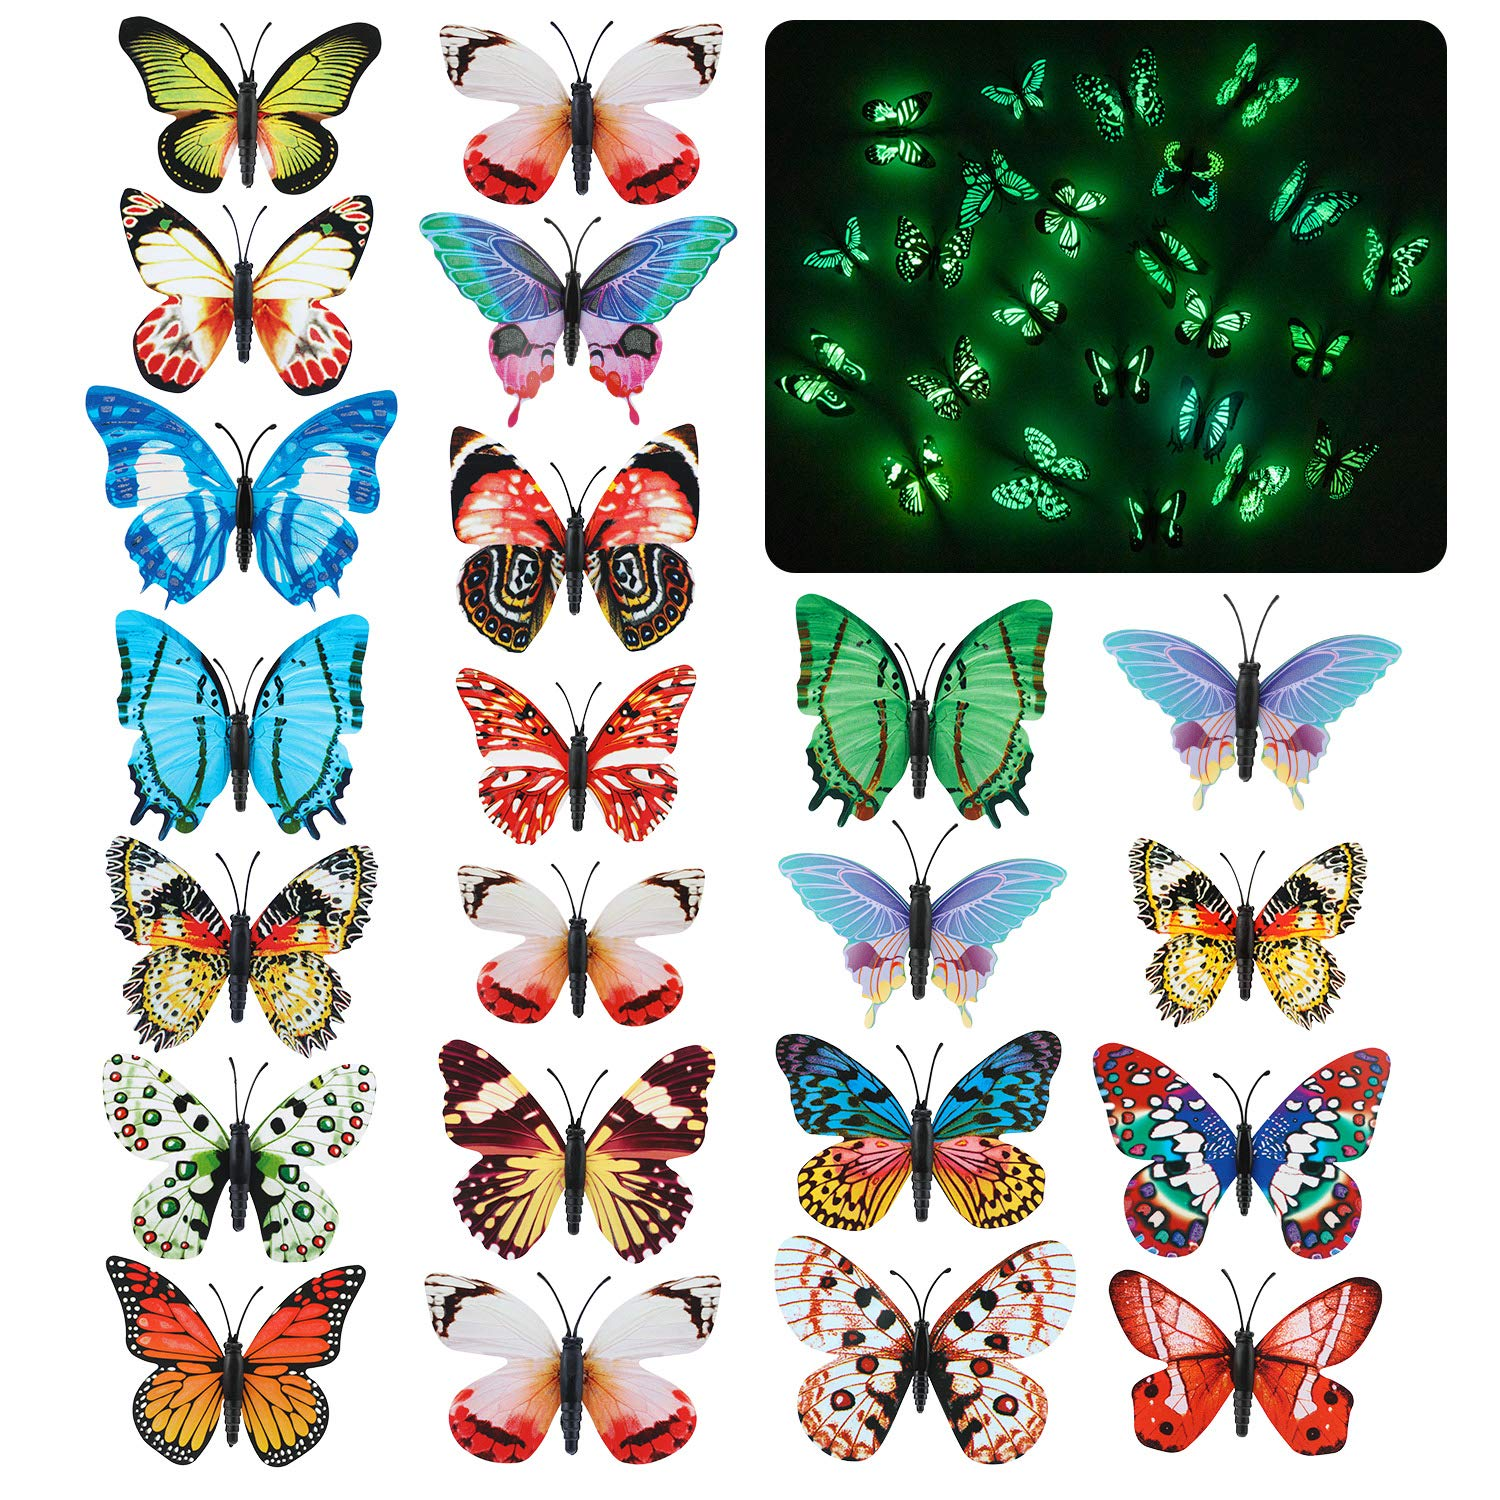 Qkurt 24pcs 3D Glow in The Dark Butterfly Wall Decals Luminous Wall Stickers for Room Home Nursery-Sticker Style